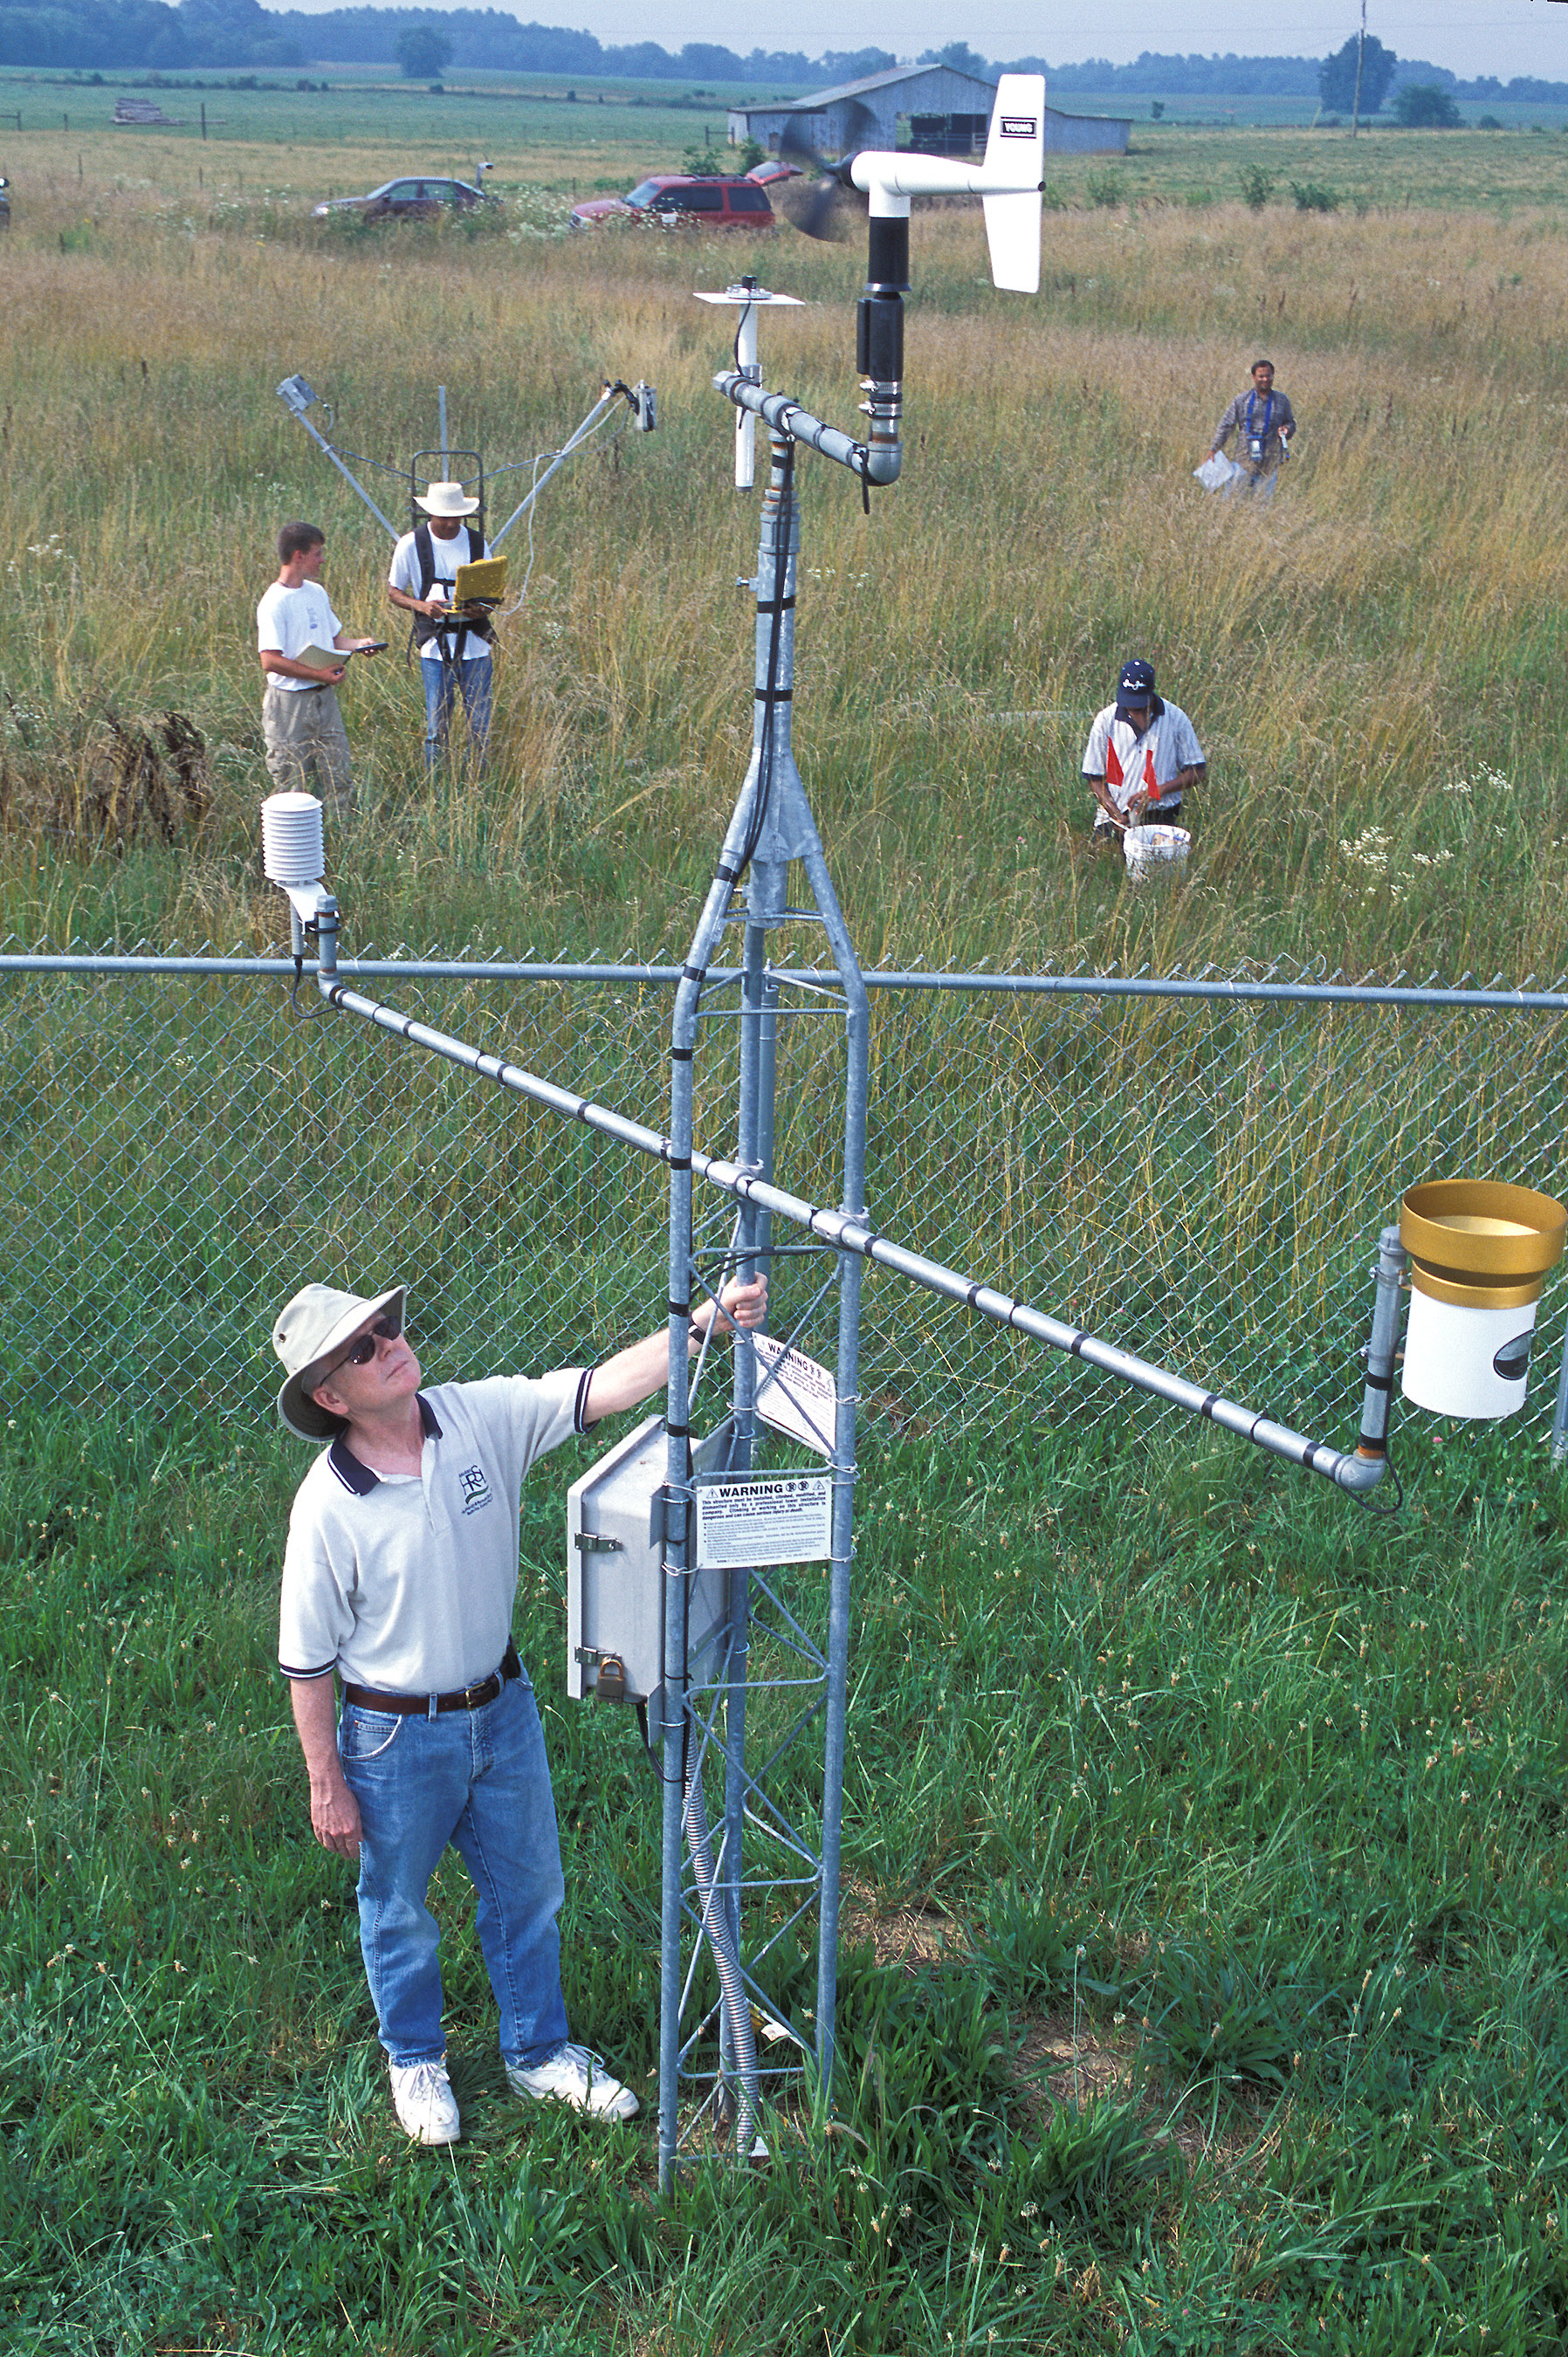 In situ soil moisture data collection, Photo by Agricultural Research magazine